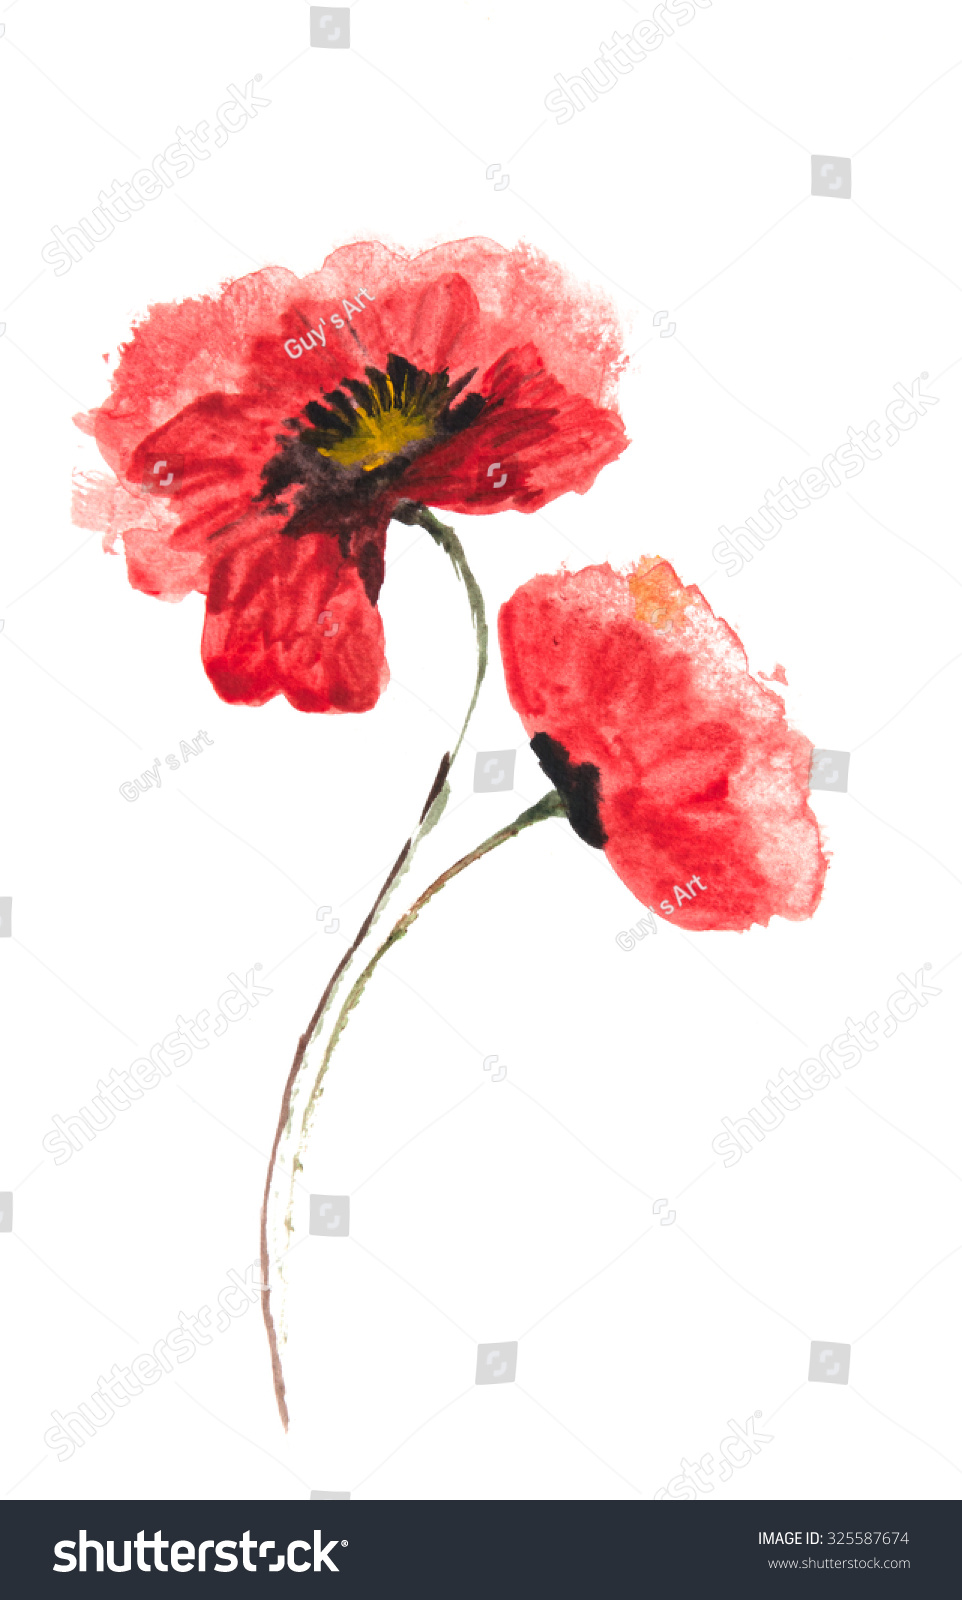 Red Poppy Flowers Acrylic Color Illustrator Stock Illustration